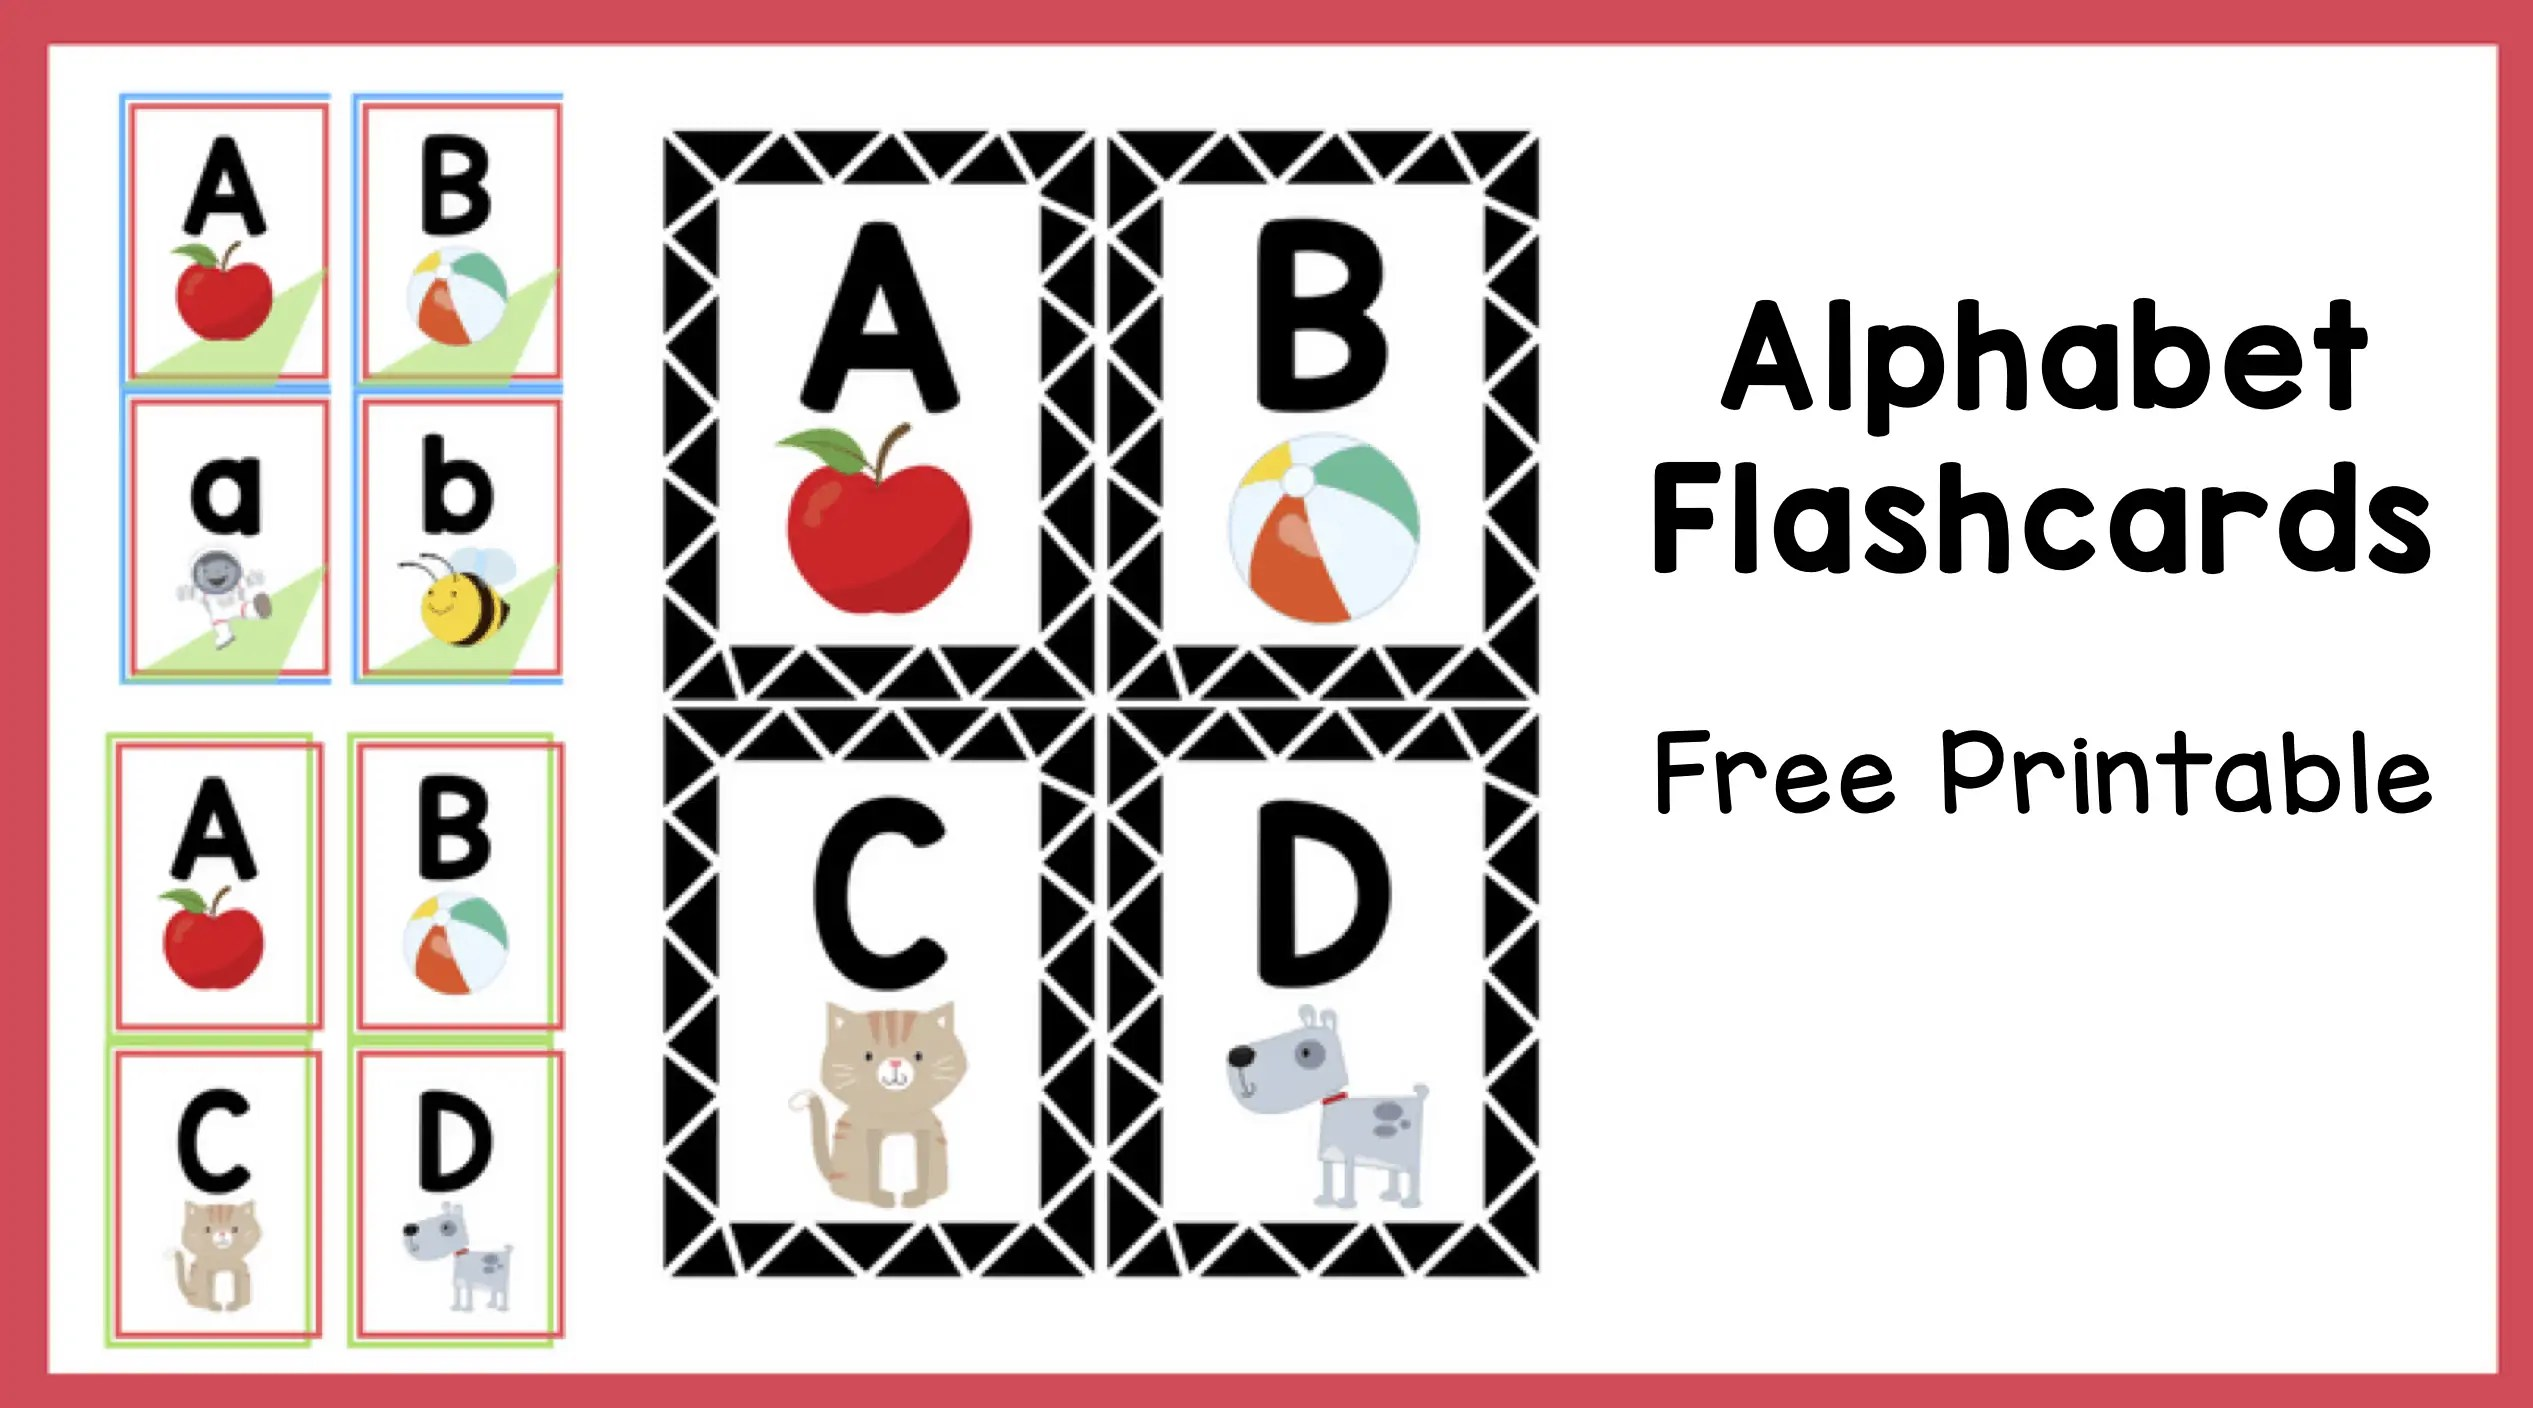 picture regarding Abc Flash Cards Free Printable called Alphabet Flashcards Absolutely free Printable - The Training Aunt